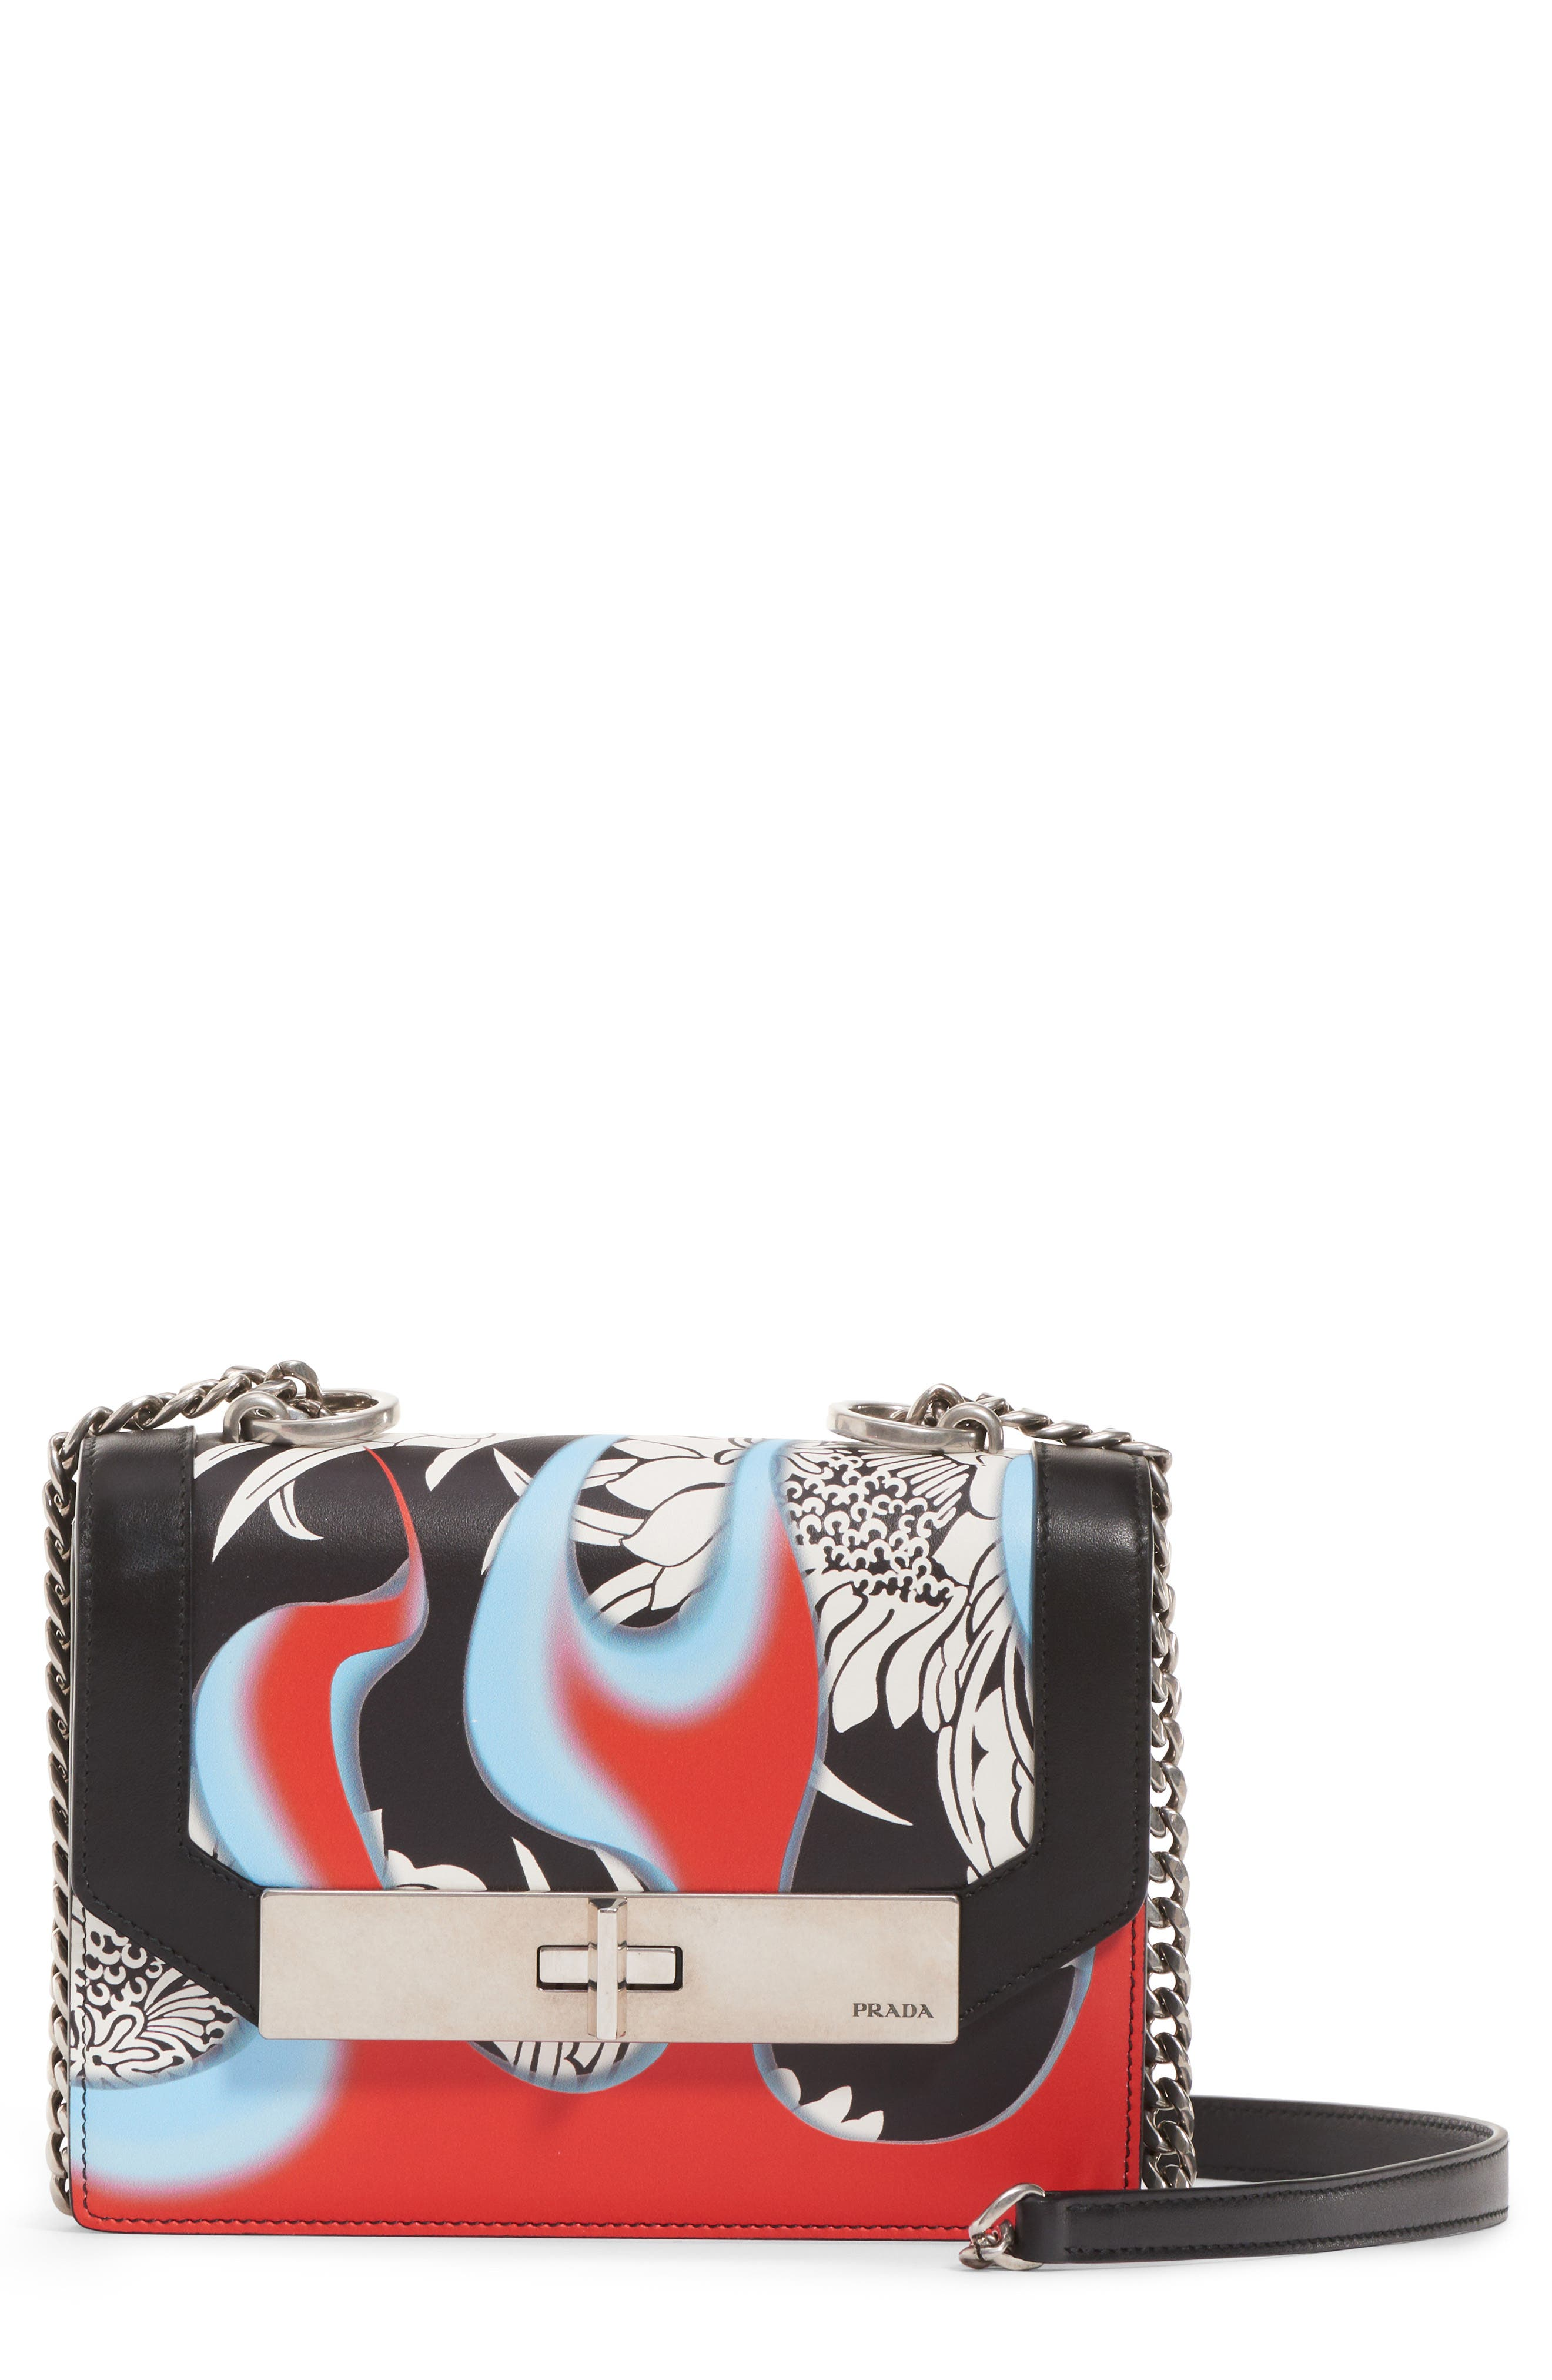 Print Leather Shoulder Bag,                             Main thumbnail 1, color,                             NERO/ ROSSO